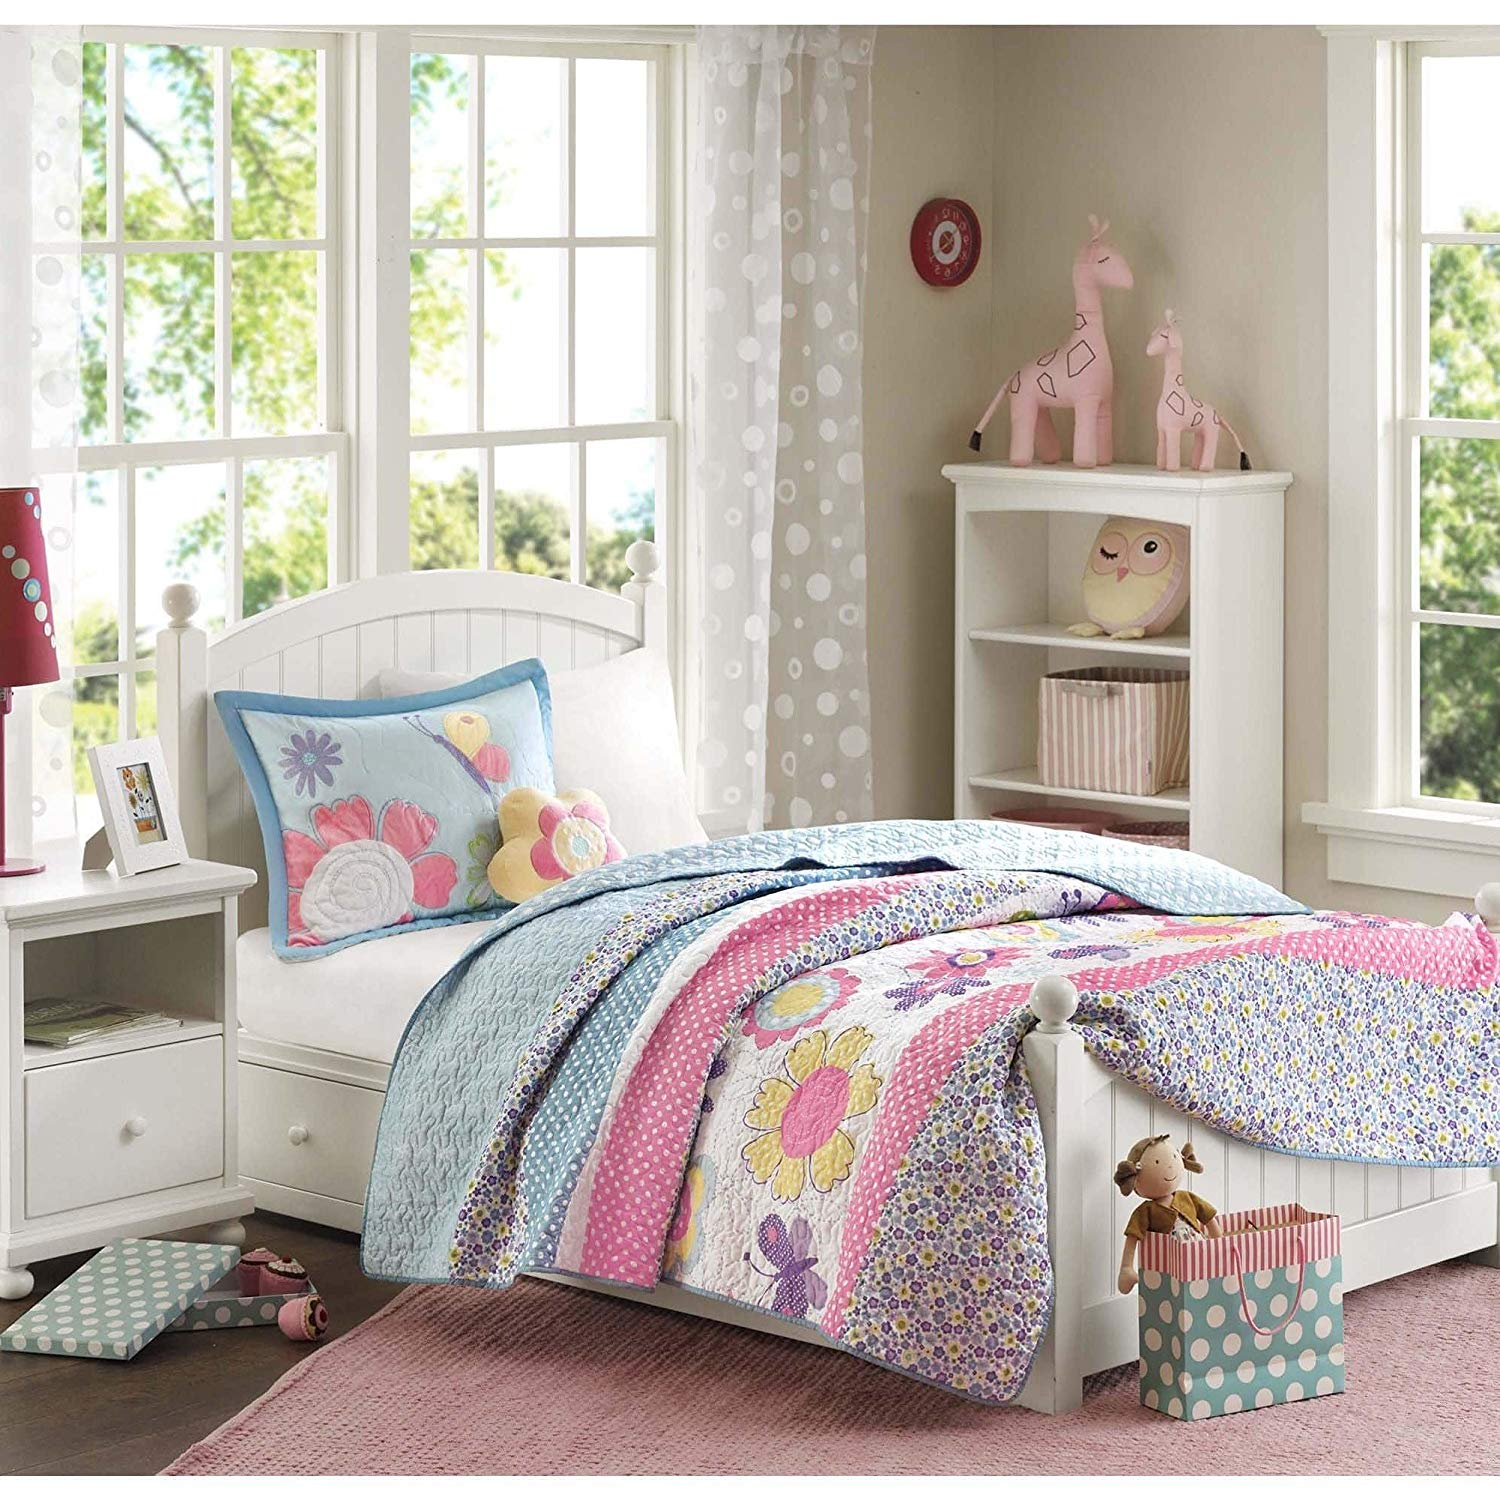 AM 3 Piece Kids Girls Pink Purple Blue Yellow White Twin Coverlet Set, Floral Themed Bedding Flower Floral Beautiful Butterfly Nature Cute Adorable Stylish Sweet Pretty Elegant Cheery, Polyester